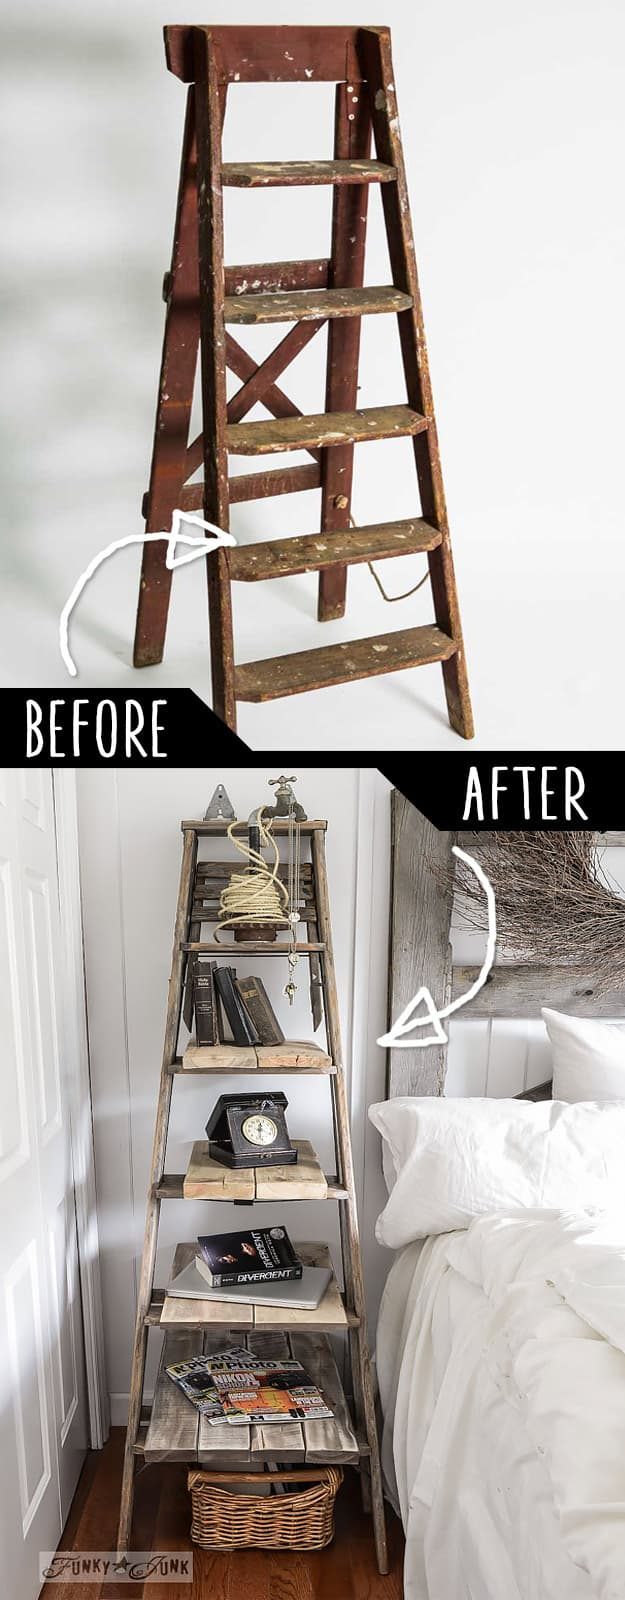 Ingenious Furniture Hacks You Ought To Try-homesthetics (31)